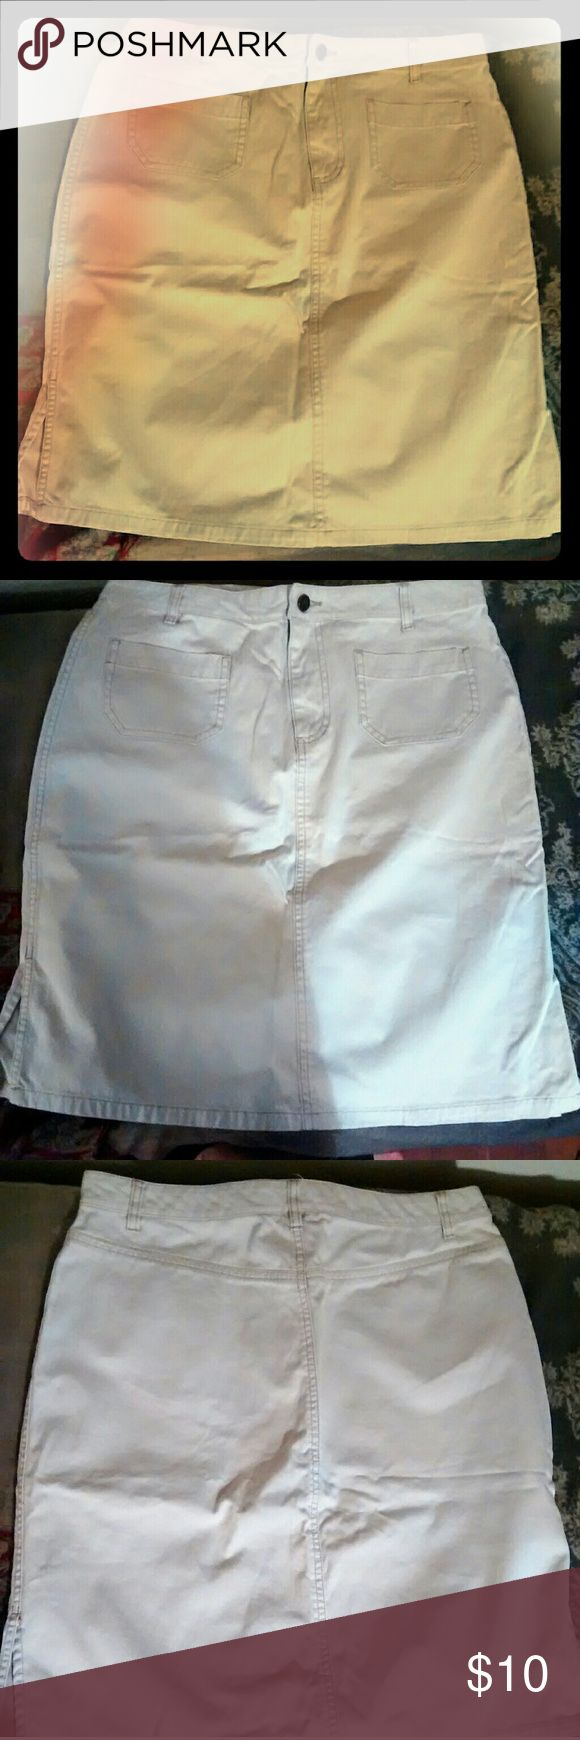 Women's Old Navy Skirt 10 Ivory/cream colored 100% cotton skirt. Size 10. Zip and button up. Front pockets. Slits on sides. Comes above the knee. Classic. Great for spring! Excellent condition! Old Navy Skirts